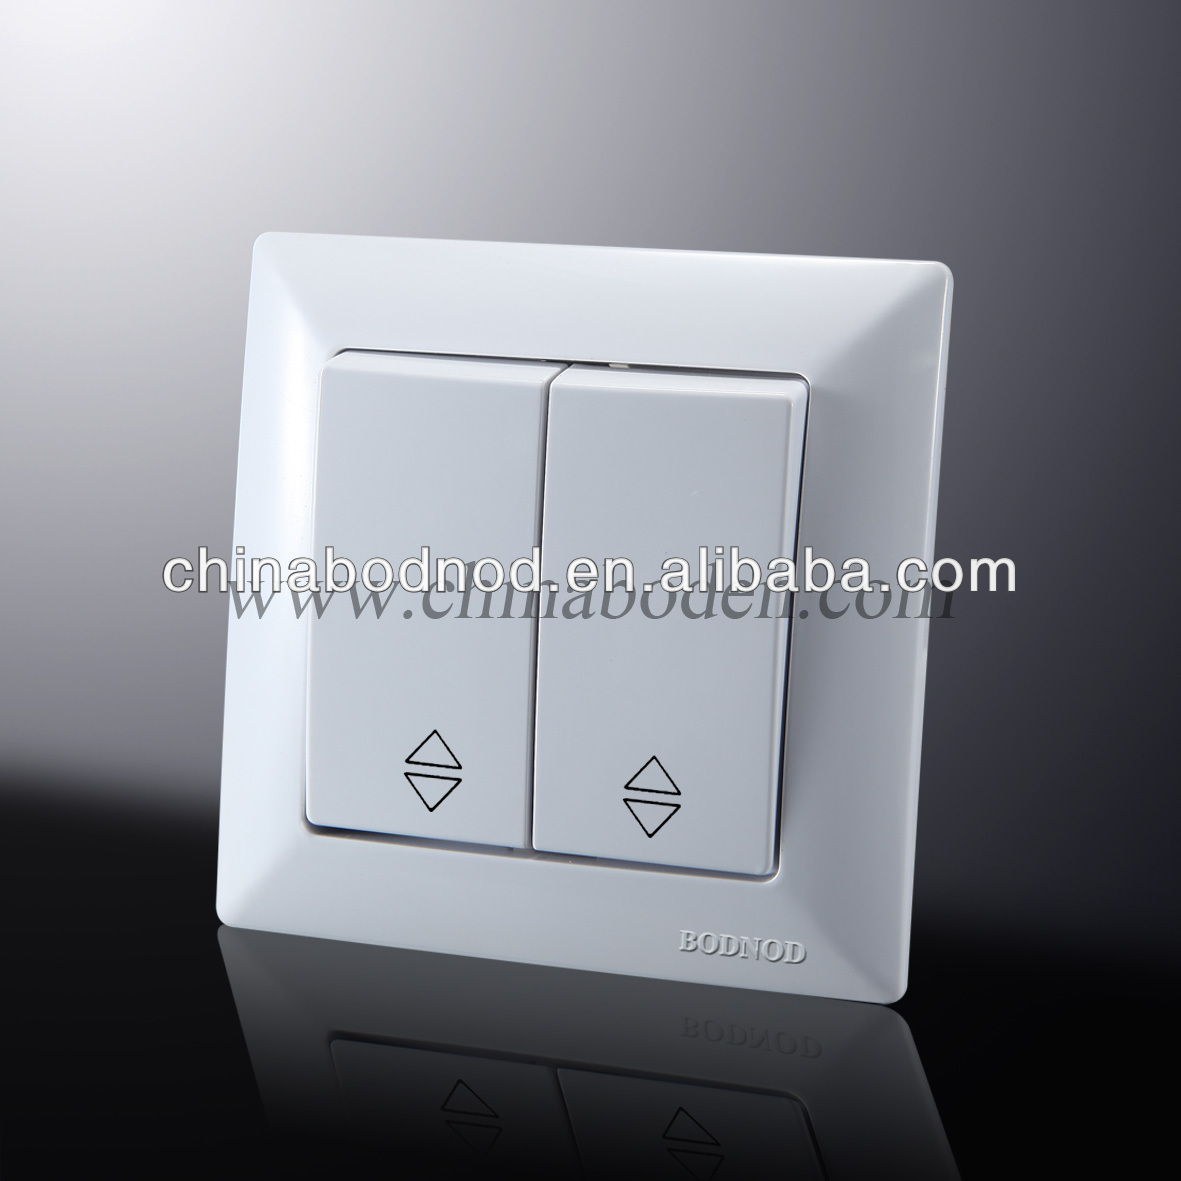 European Style Switch, European Style Switch Suppliers and ...